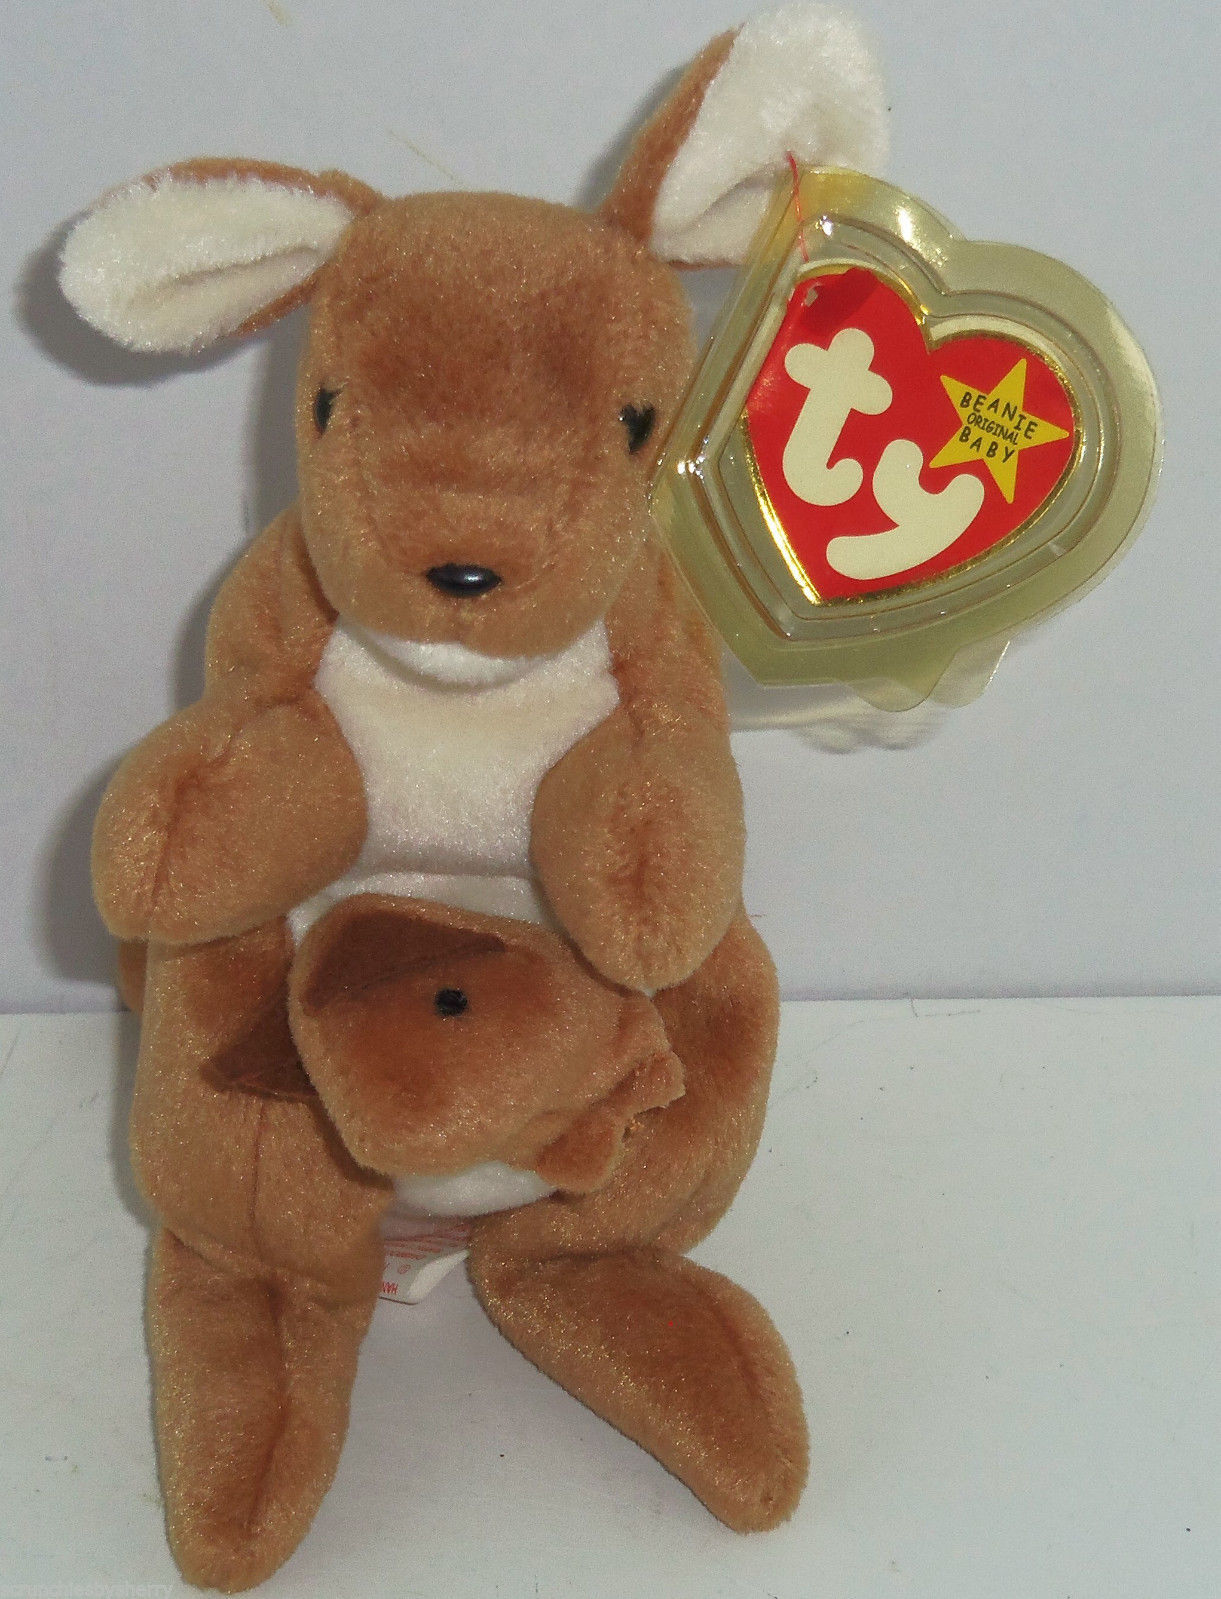 Pouch Ty Beanie Baby Babies Kangaroo 1996 and 18 similar items. S l1600 874c571cf143